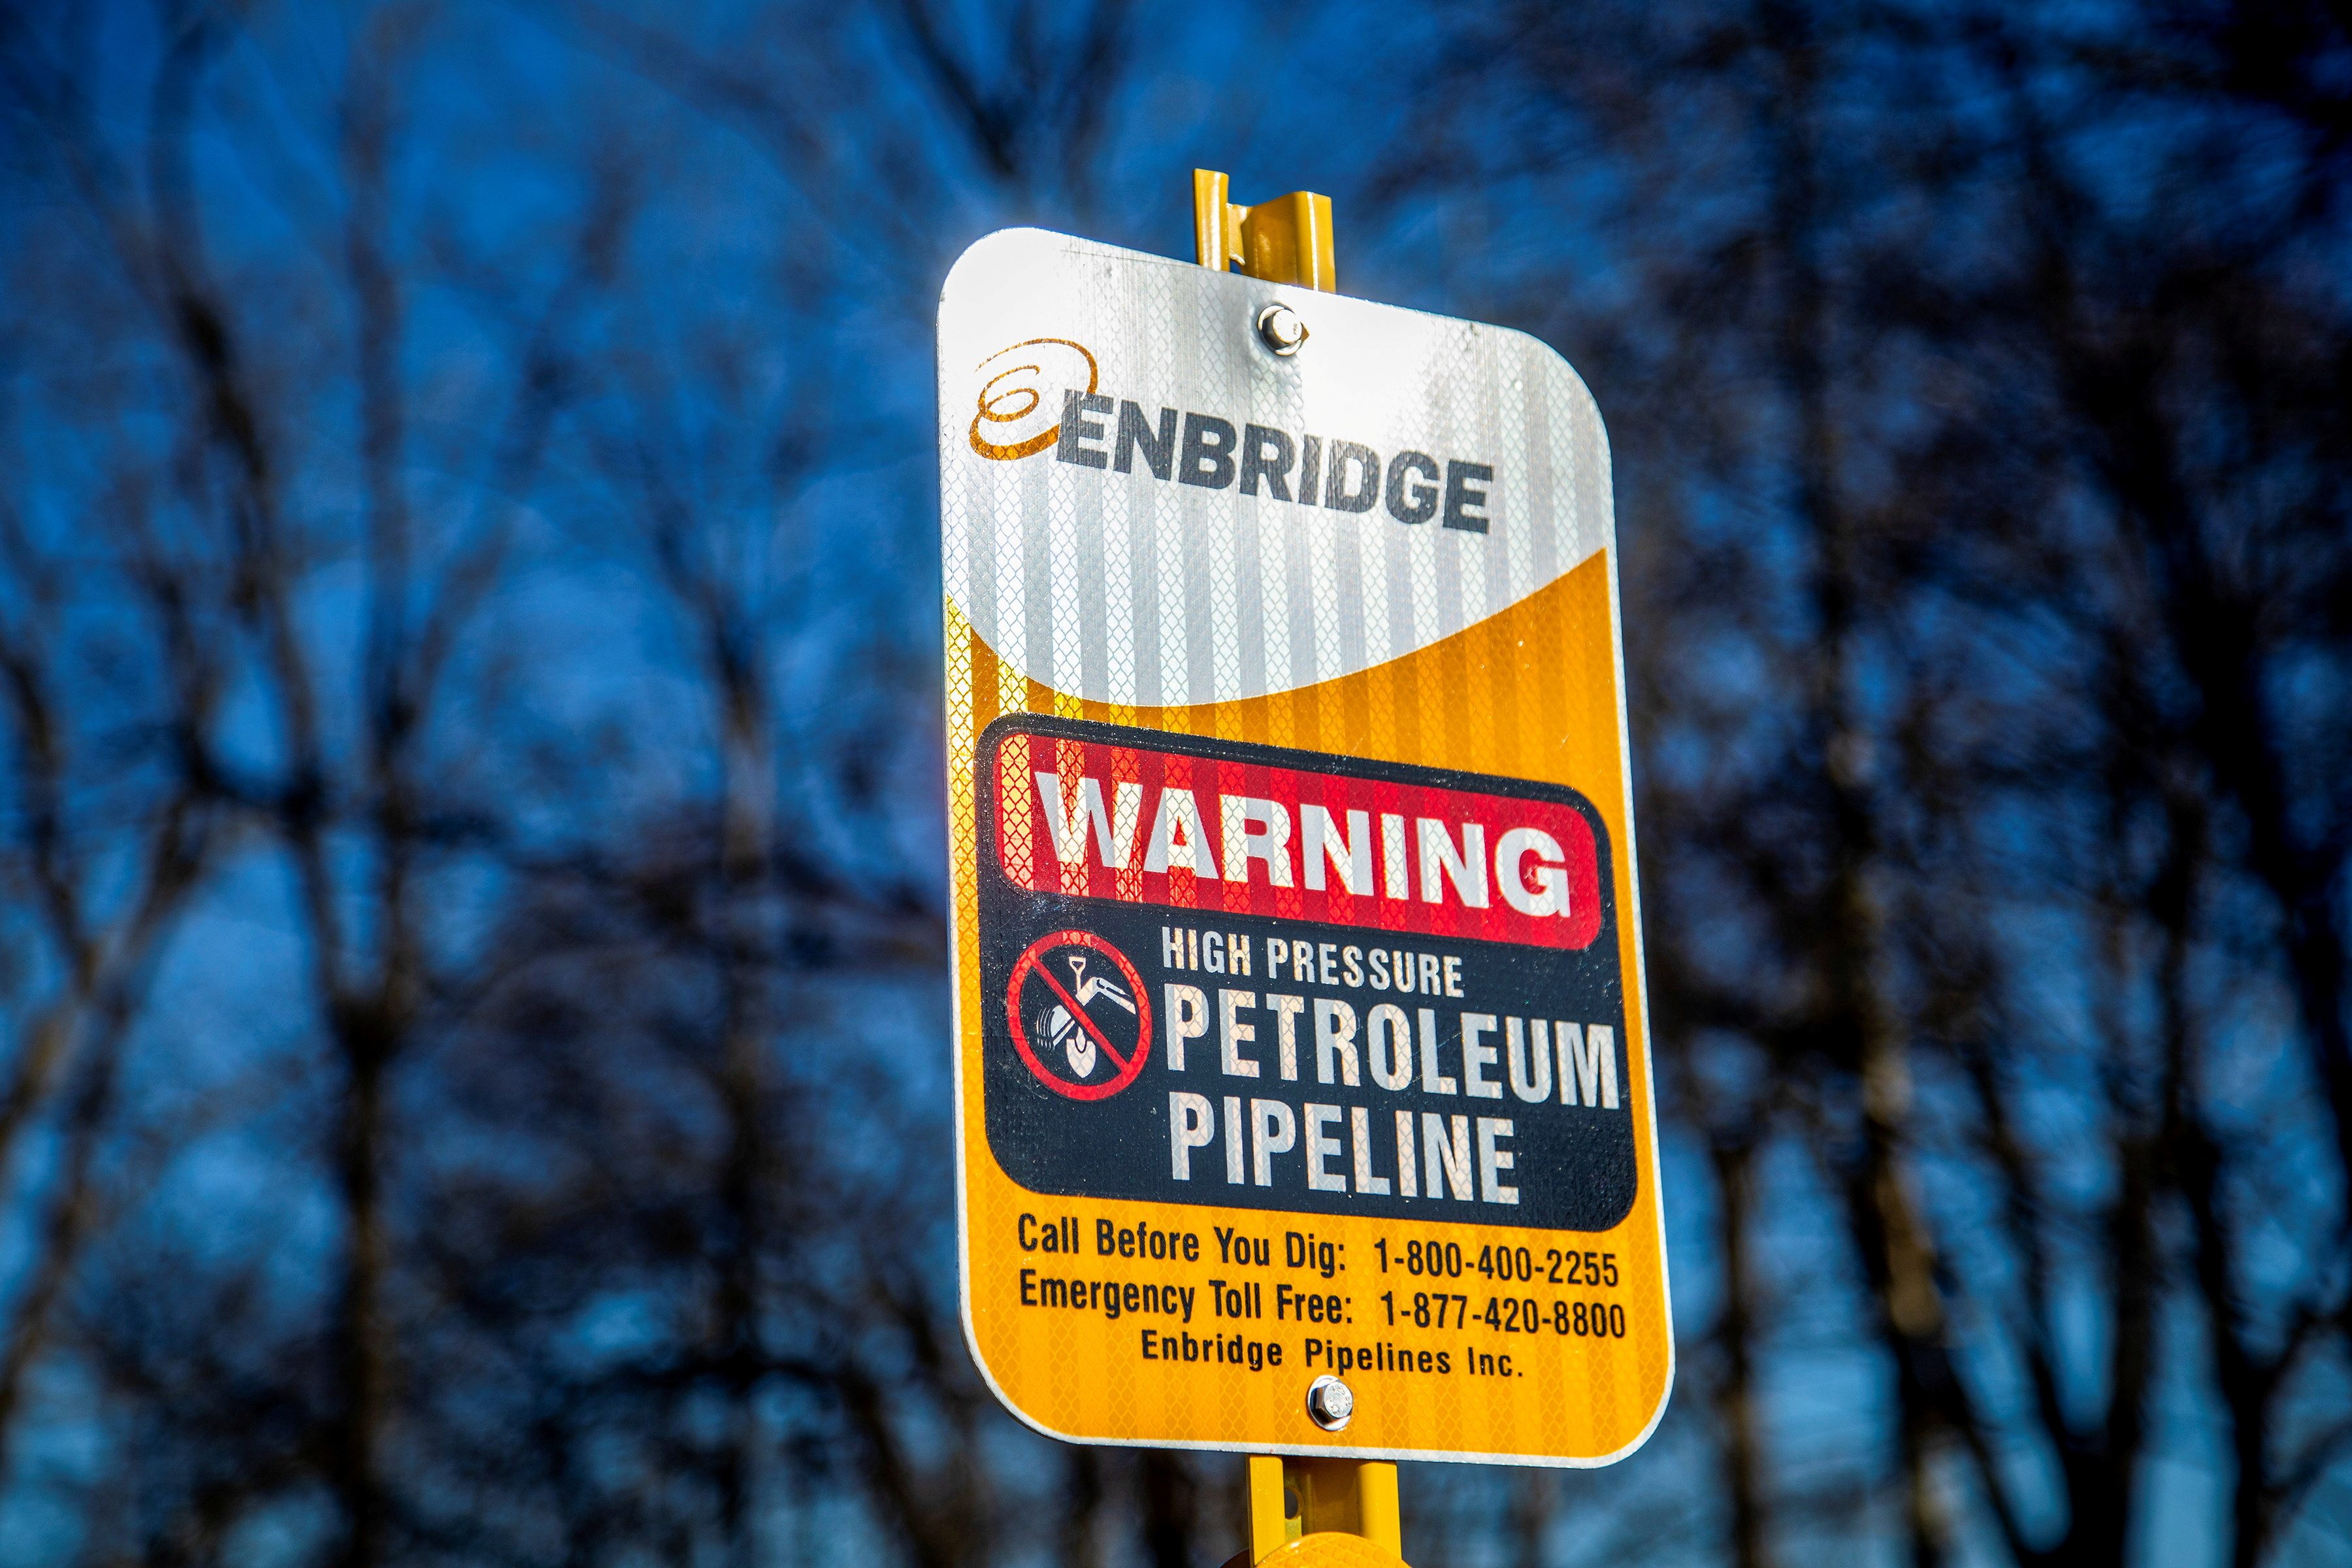 A signpost marks the presence of Enbridge's Line 5 pipeline, which Michigan Governor Gretchen Whitmer ordered shut down in May 2021, in Sarnia, Ontario, Canada March 20, 2021. Picture taken March 20, 2021. REUTERS/Carlos Osorio/File Photo